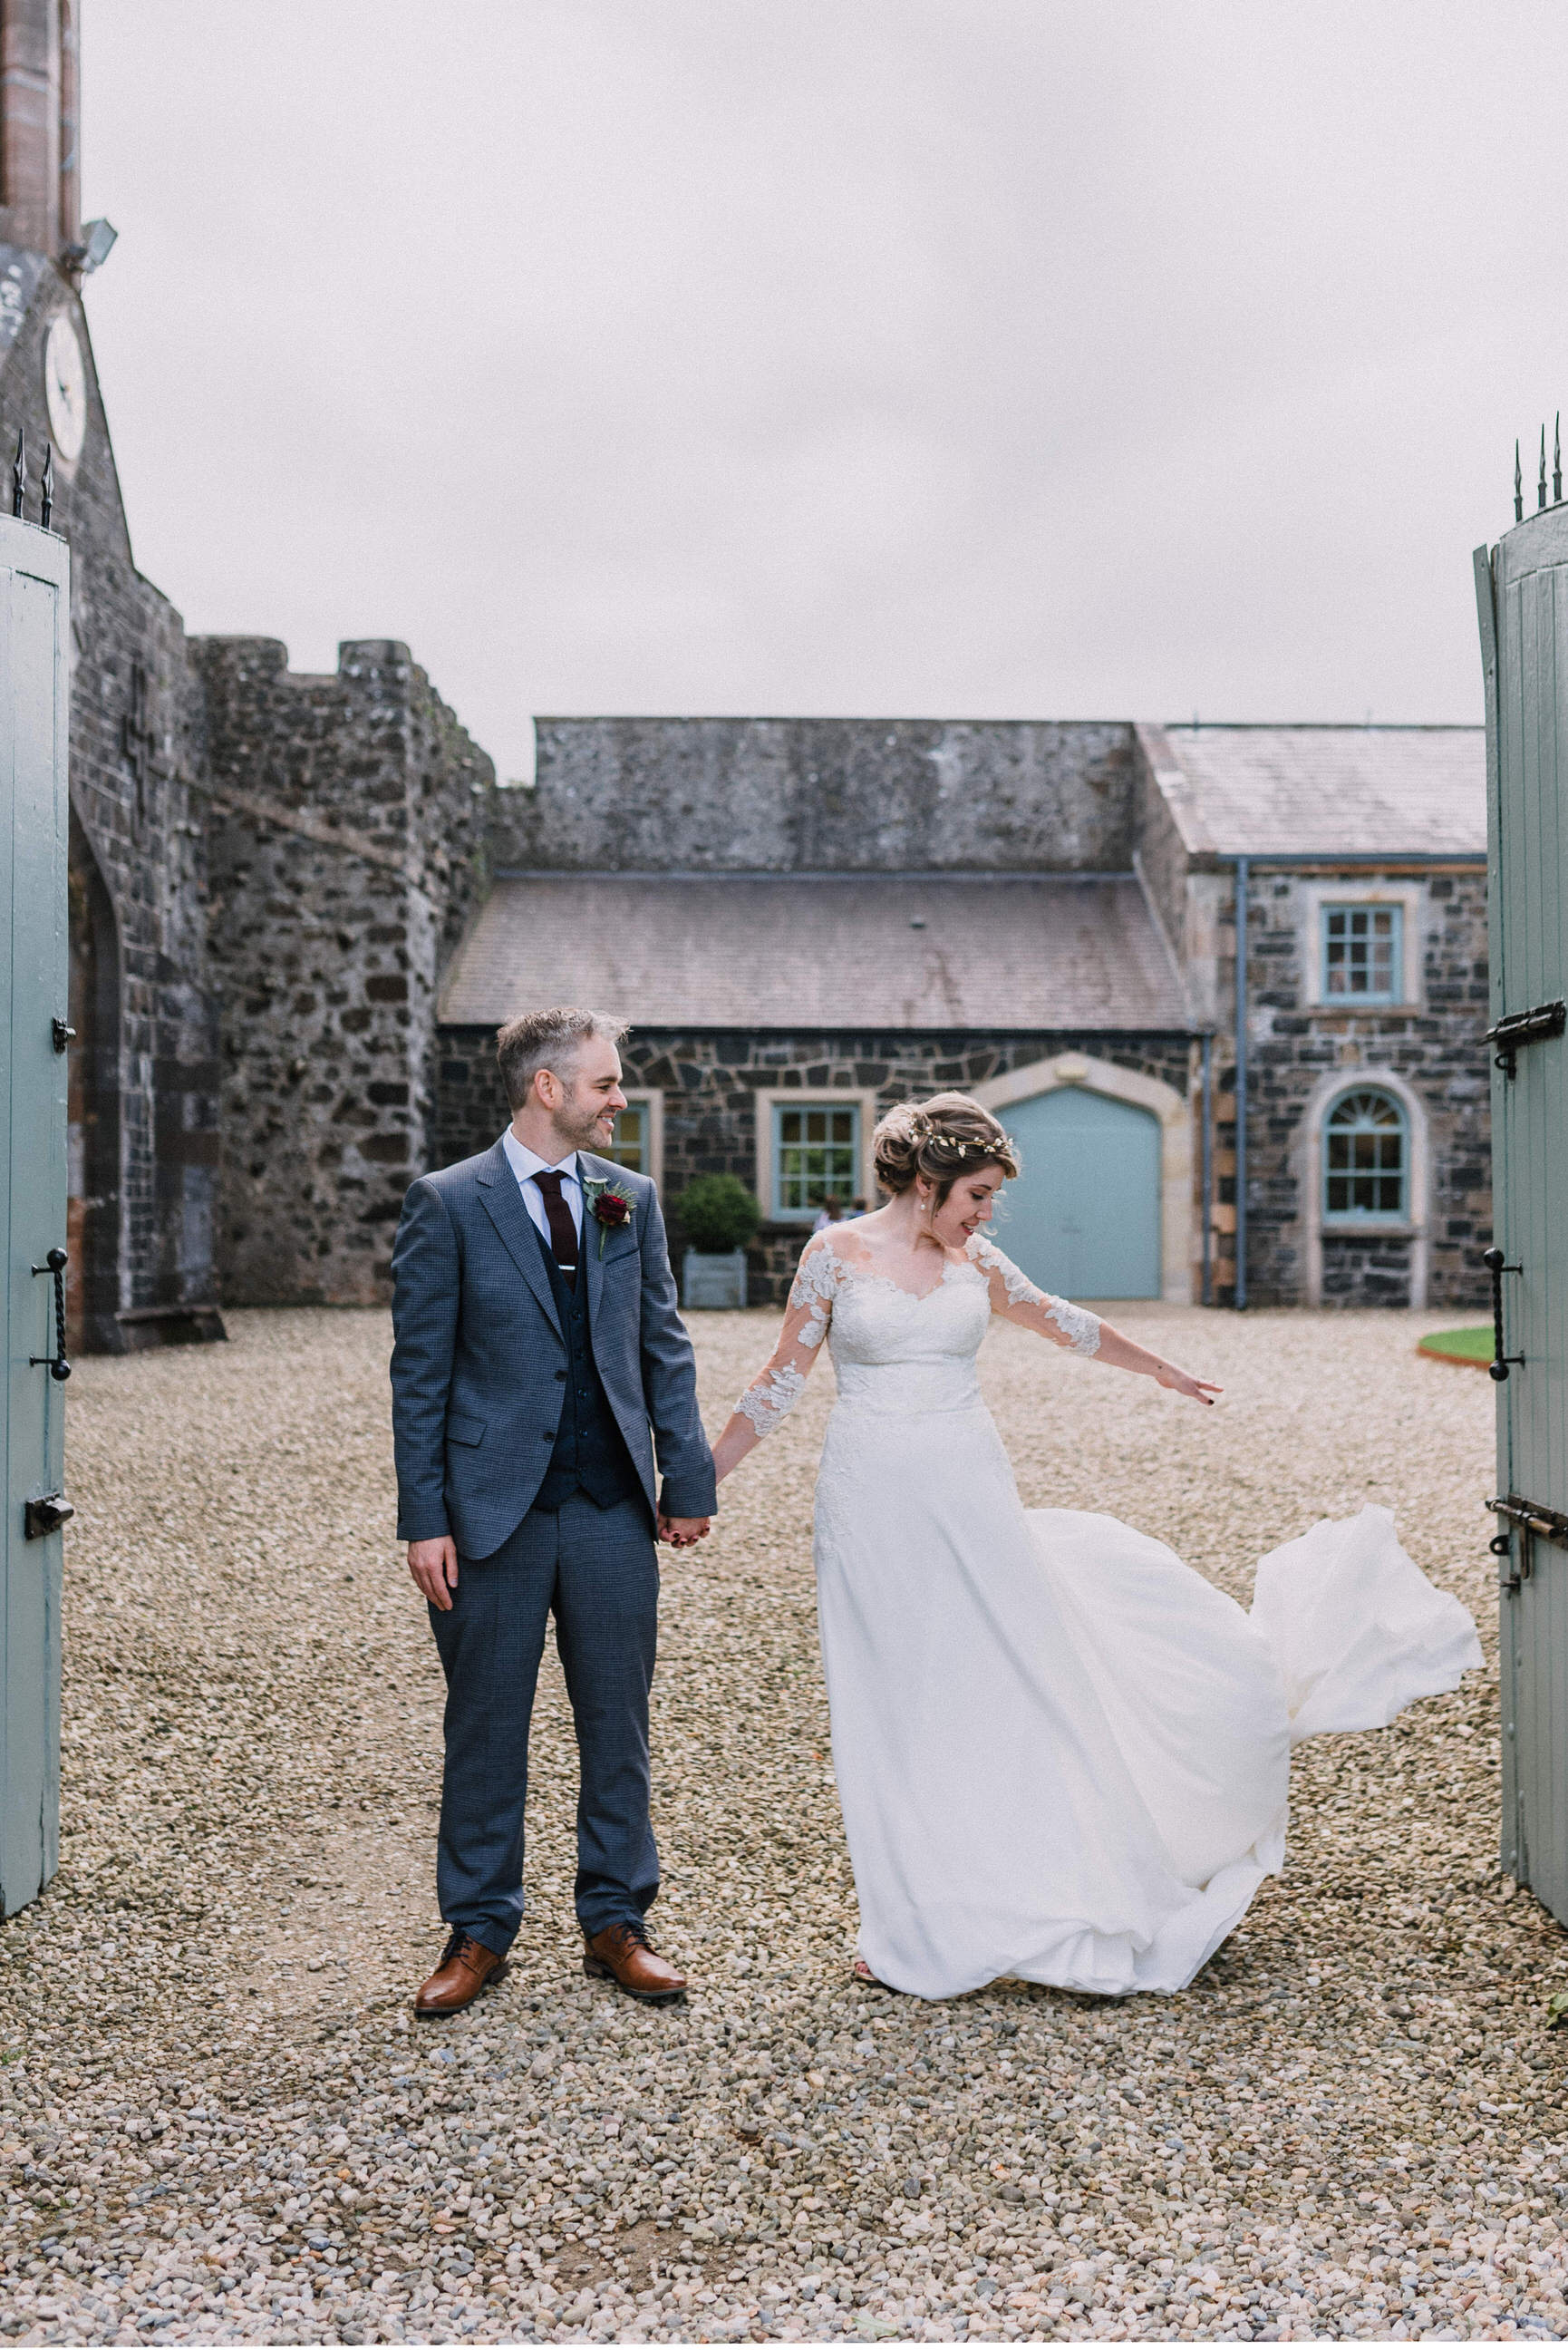 lissanoure castle wedding, northern ireland wedding photographer, romantic northern irish wedding venue, castle wedding ireland, natural wedding photography ni (89).jpg